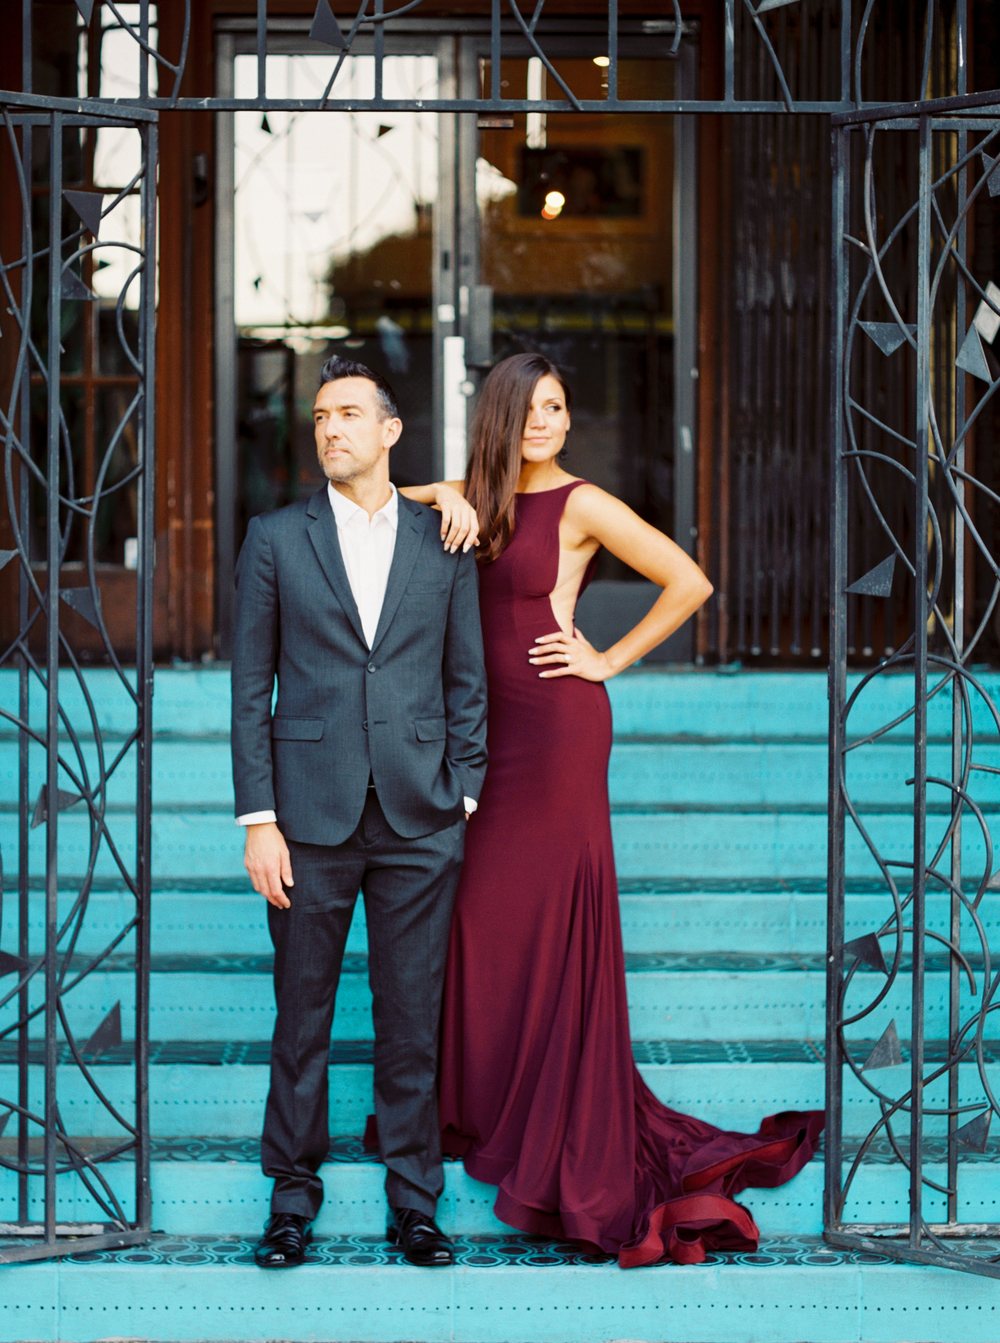 downtown_losangeles_engagement_photos_chantepaul-75.jpg